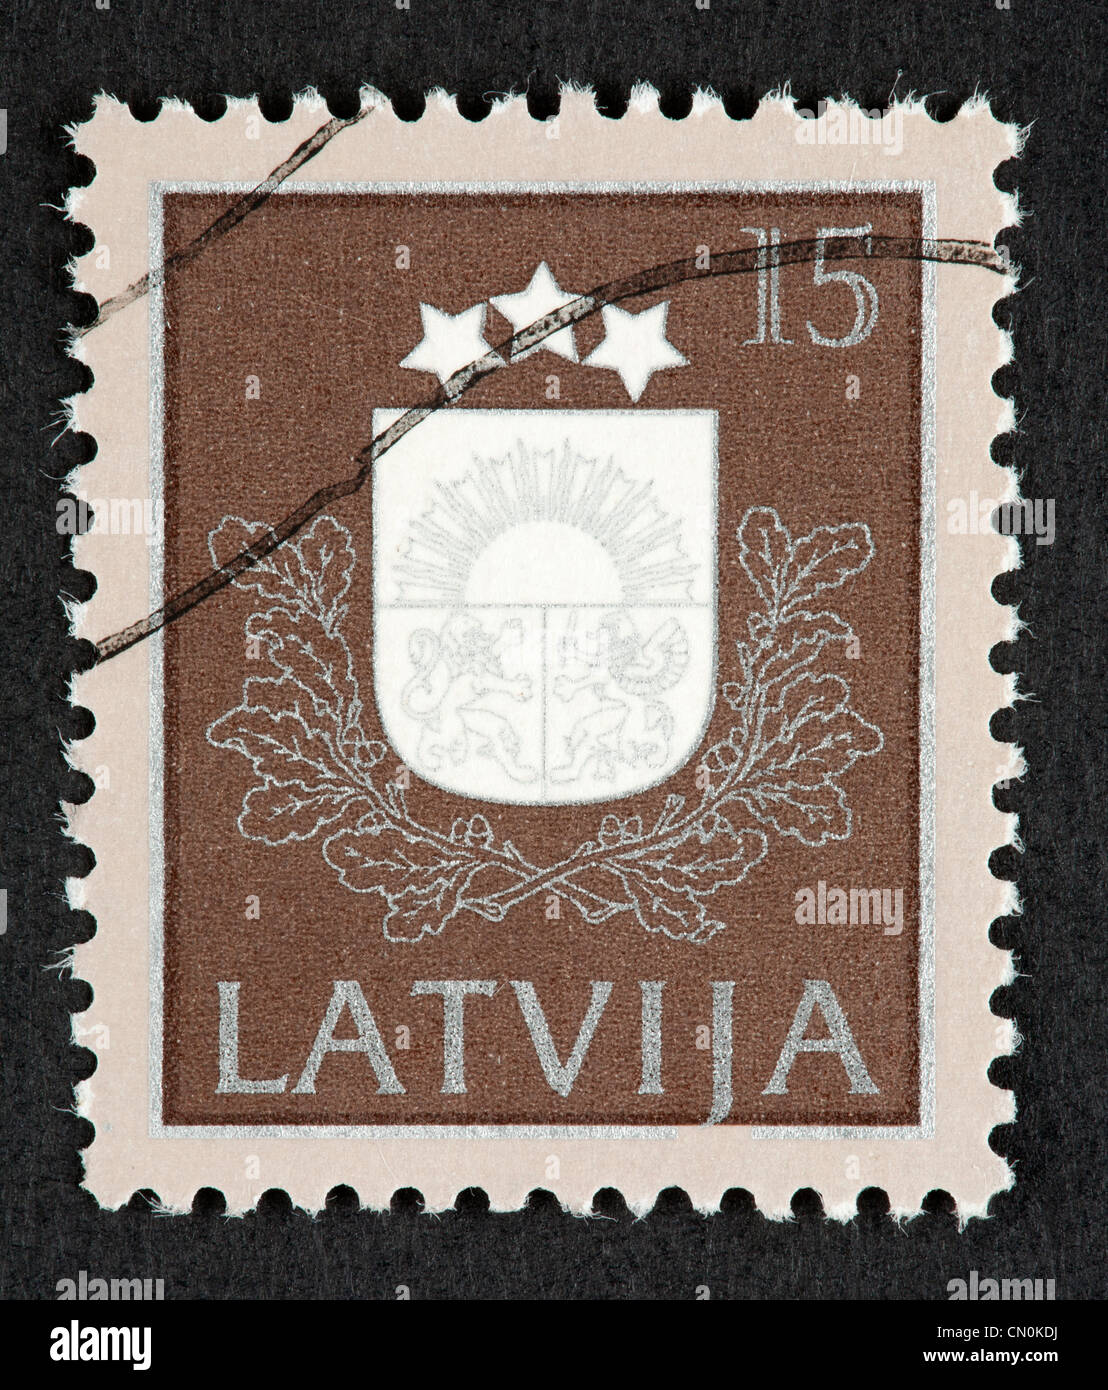 Latvian postage stamp - Stock Image